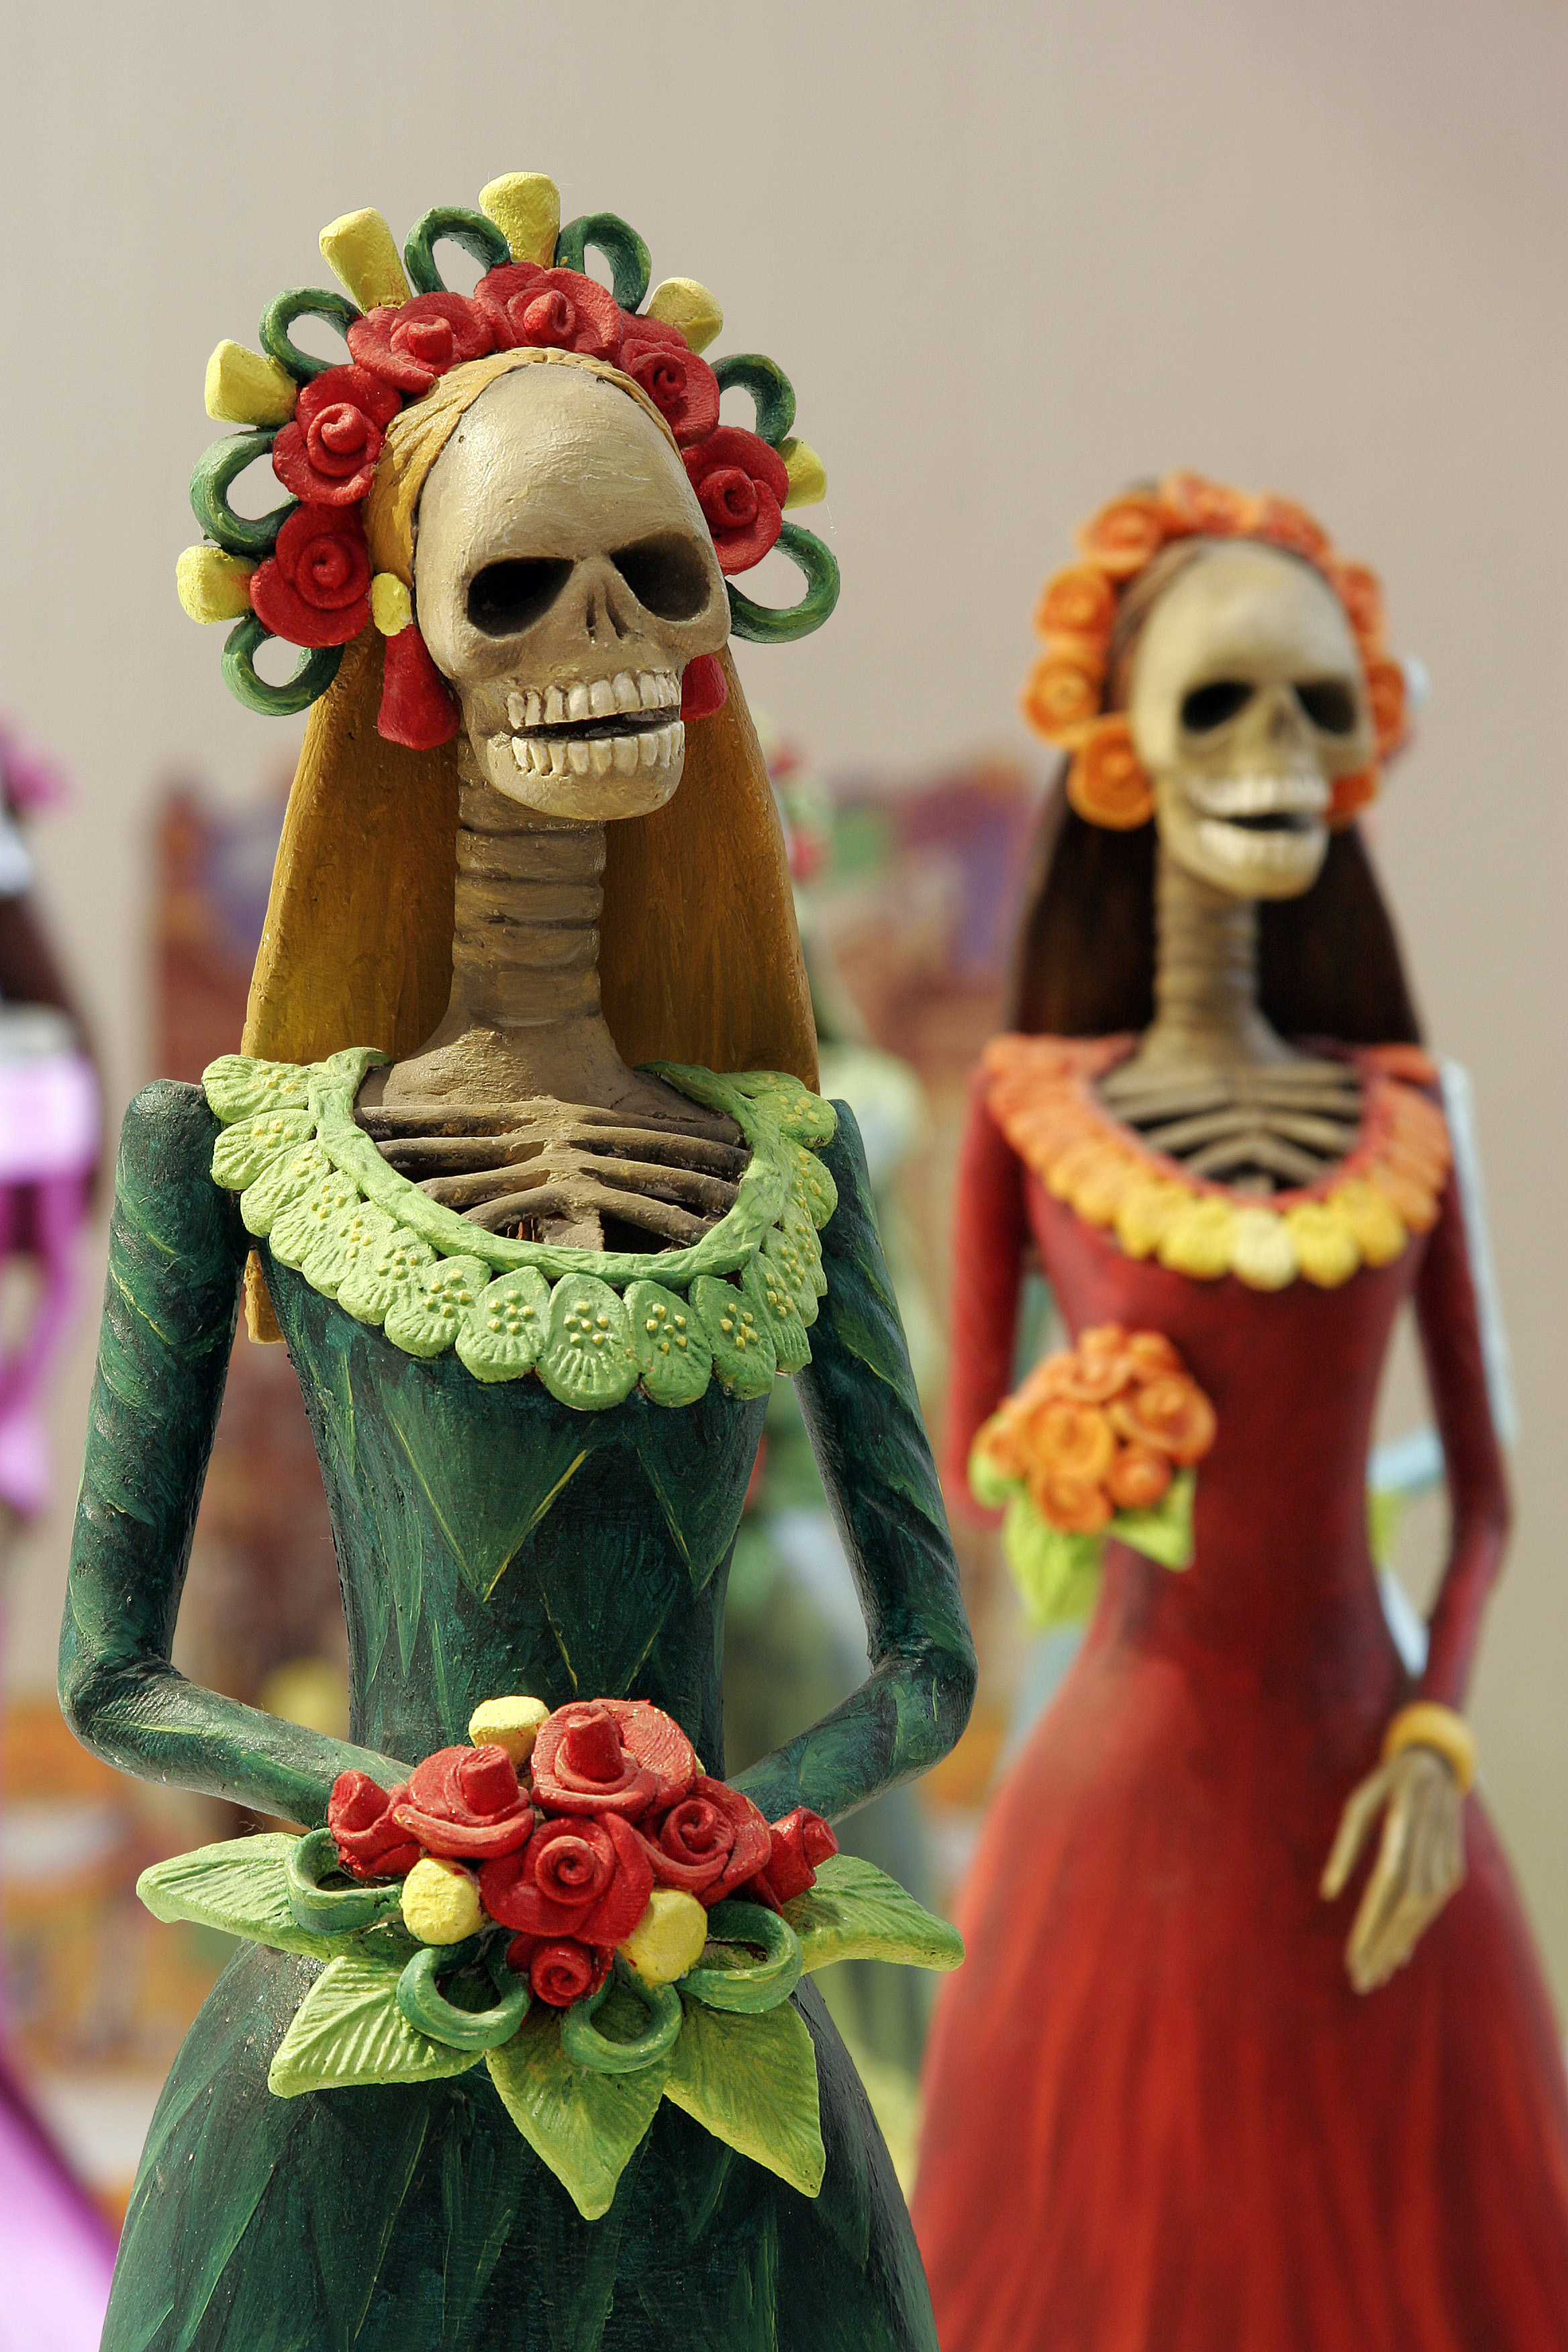 ghost catrinas one of the most popular figures of the day of the dead celebrations in